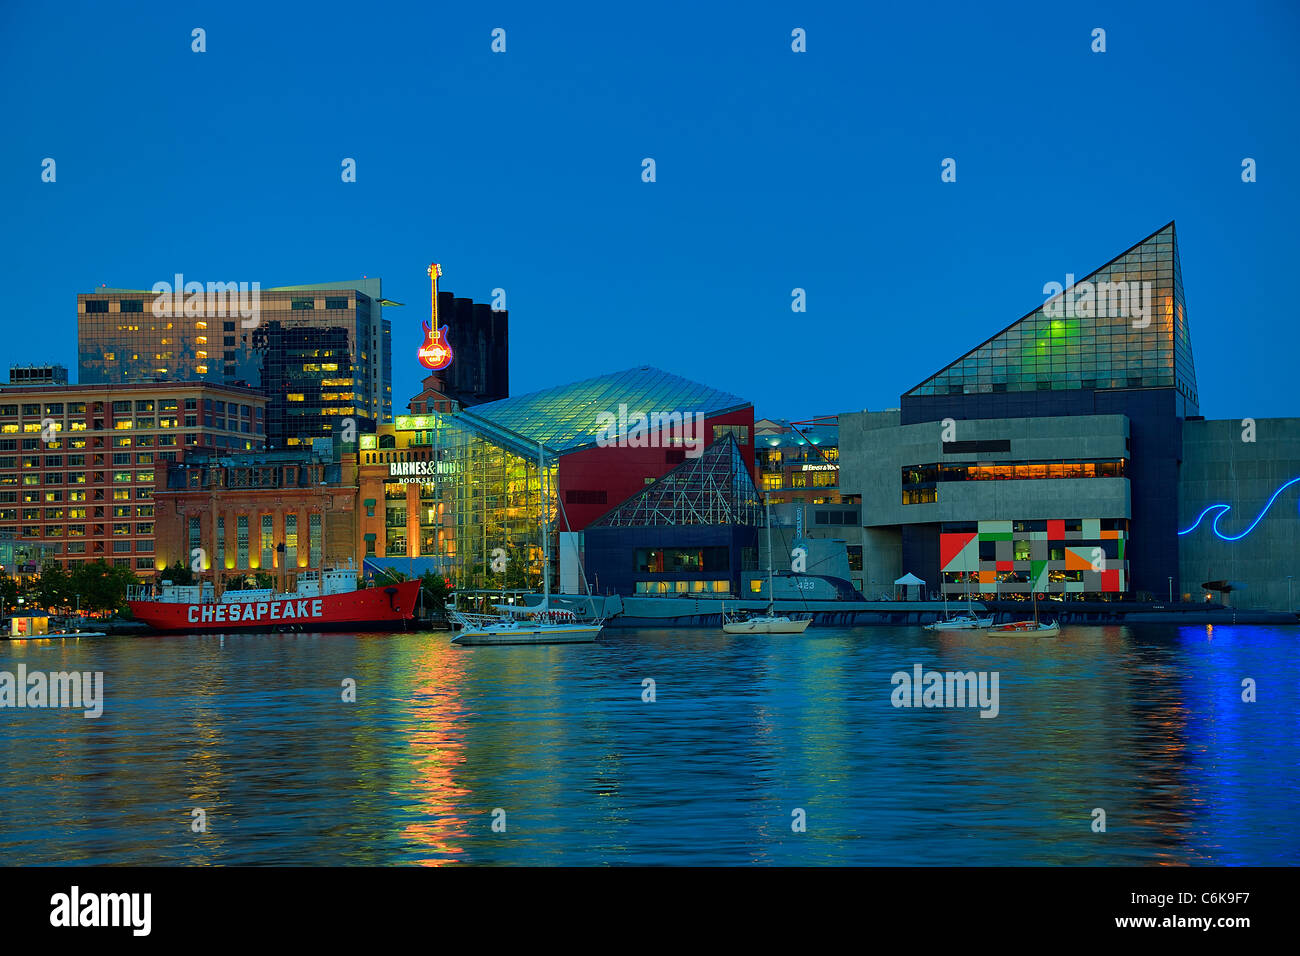 Inner Harbor, Baltimore, Maryland, USA - Stock Image